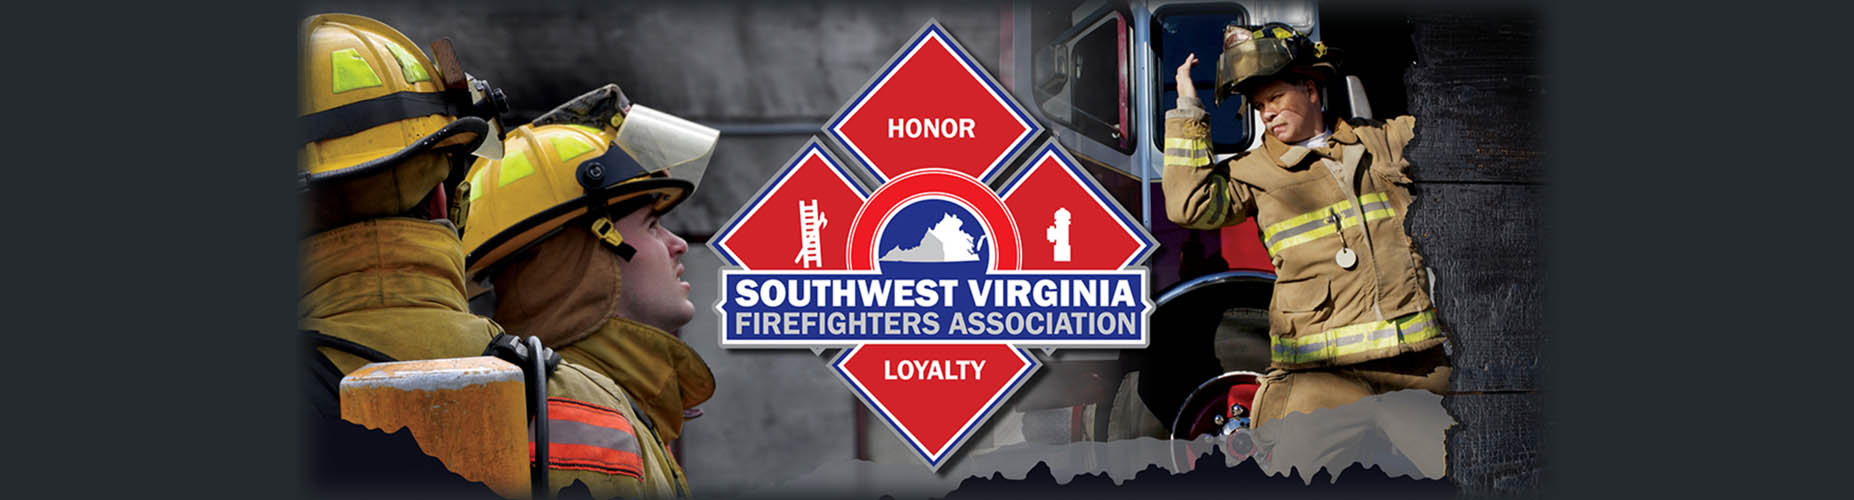 Southwest Virginia Firefighters Association